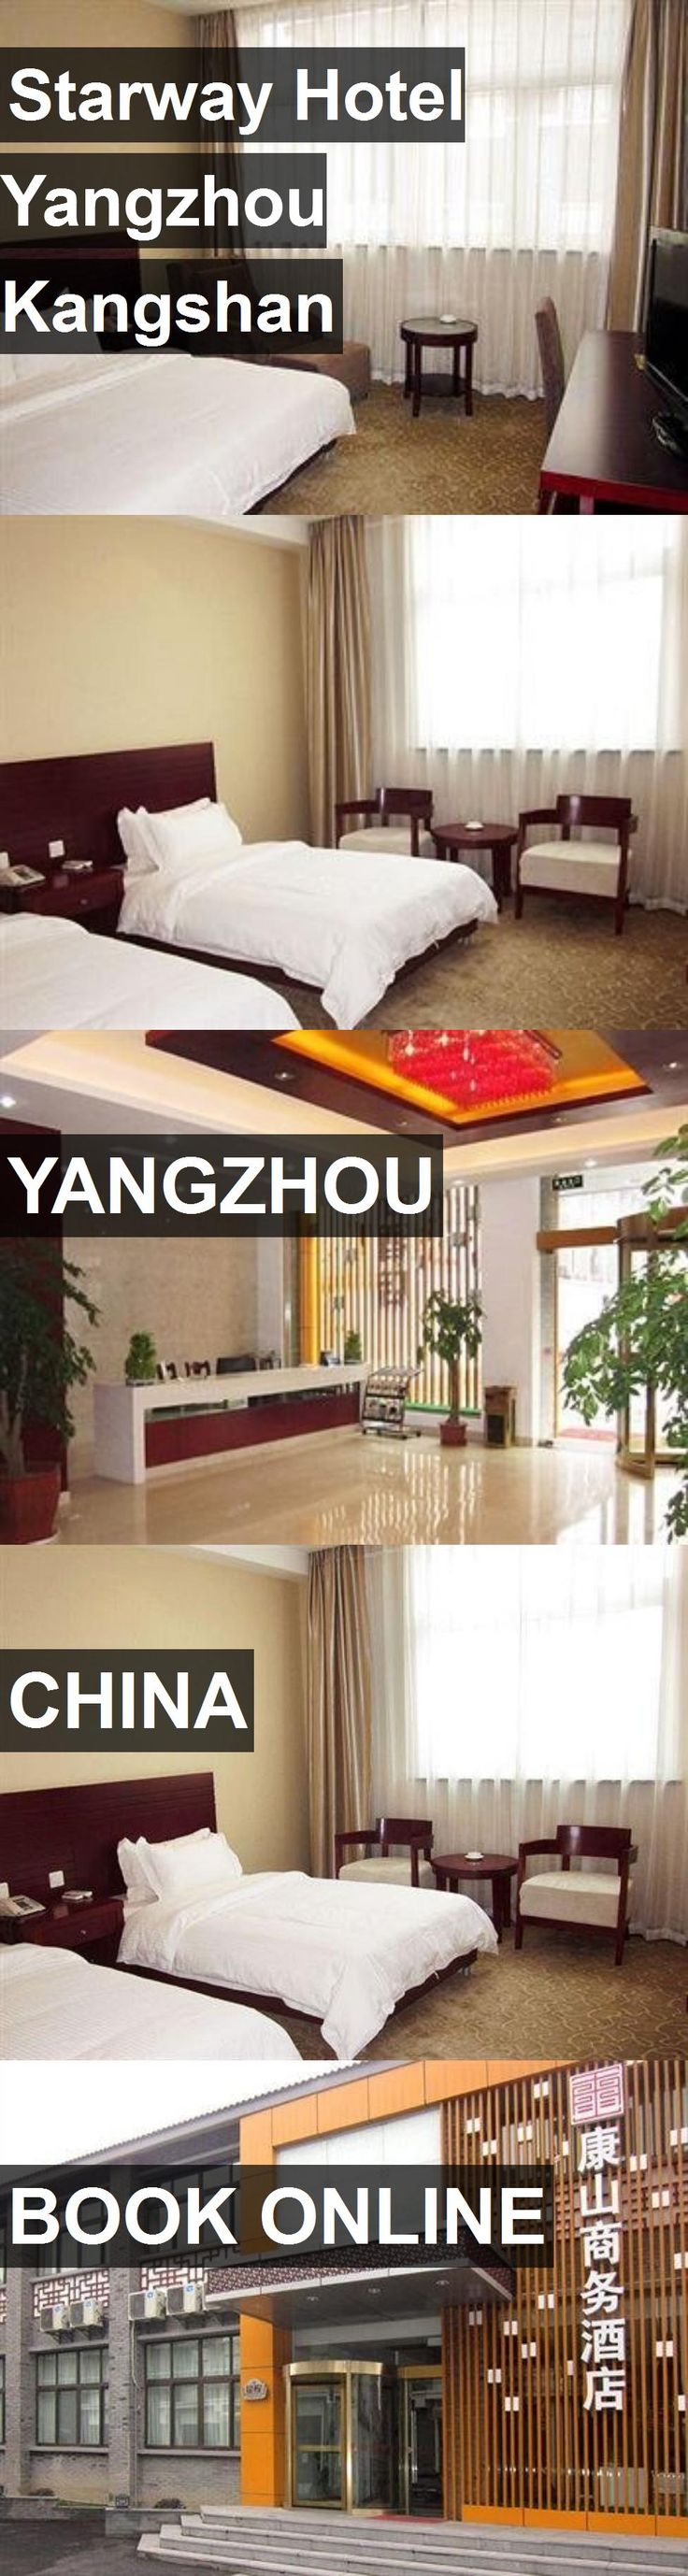 Starway Hotel Yangzhou Kangshan in Yangzhou, China. For more information, photos, reviews and best prices please follow the link. #China #Yangzhou #travel #vacation #hotel